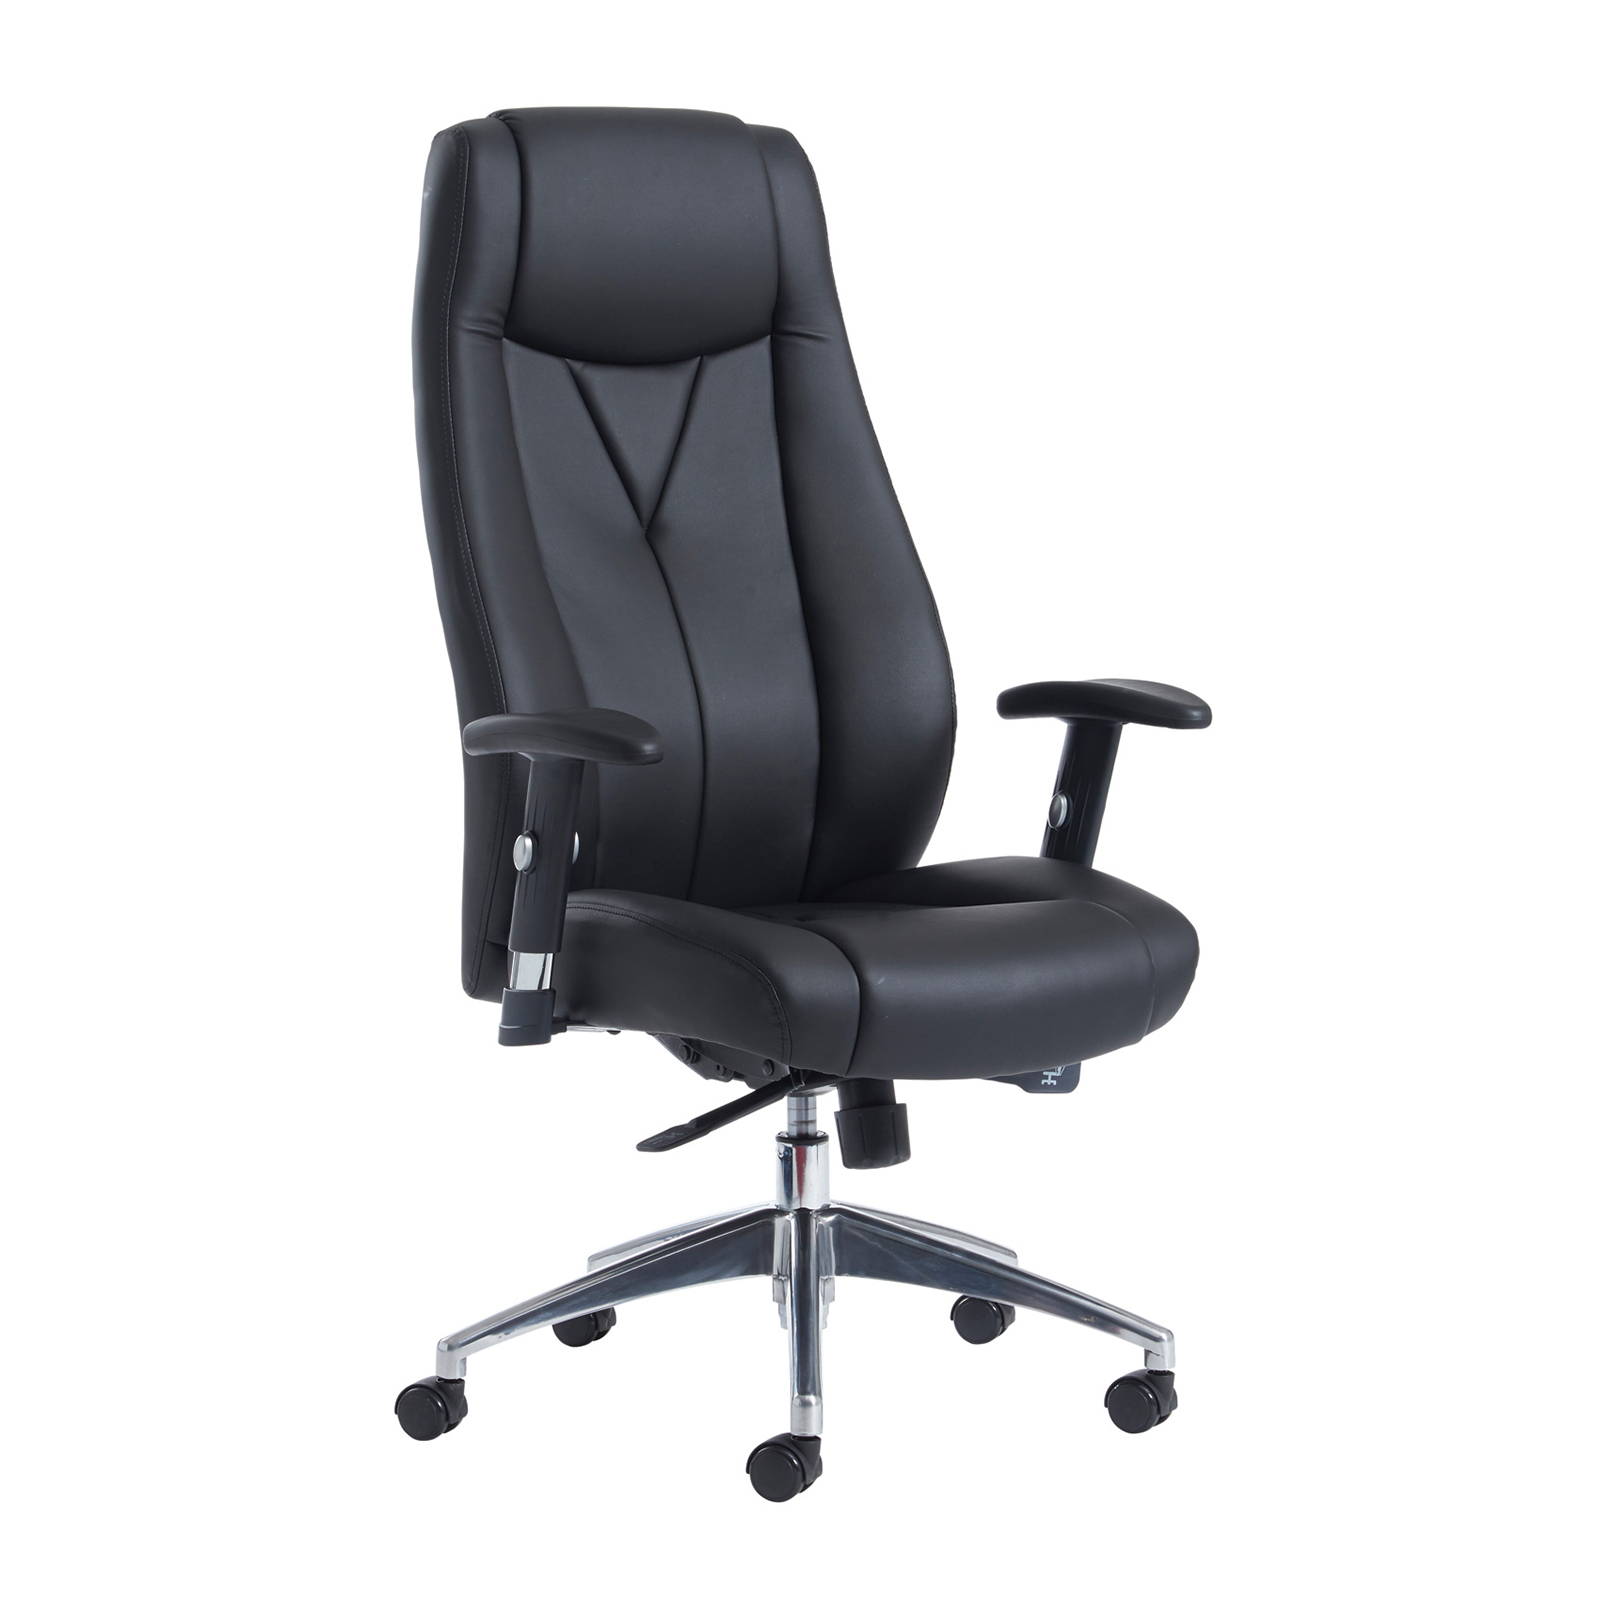 Executive Chairs Odessa high back executive chair - black faux leather